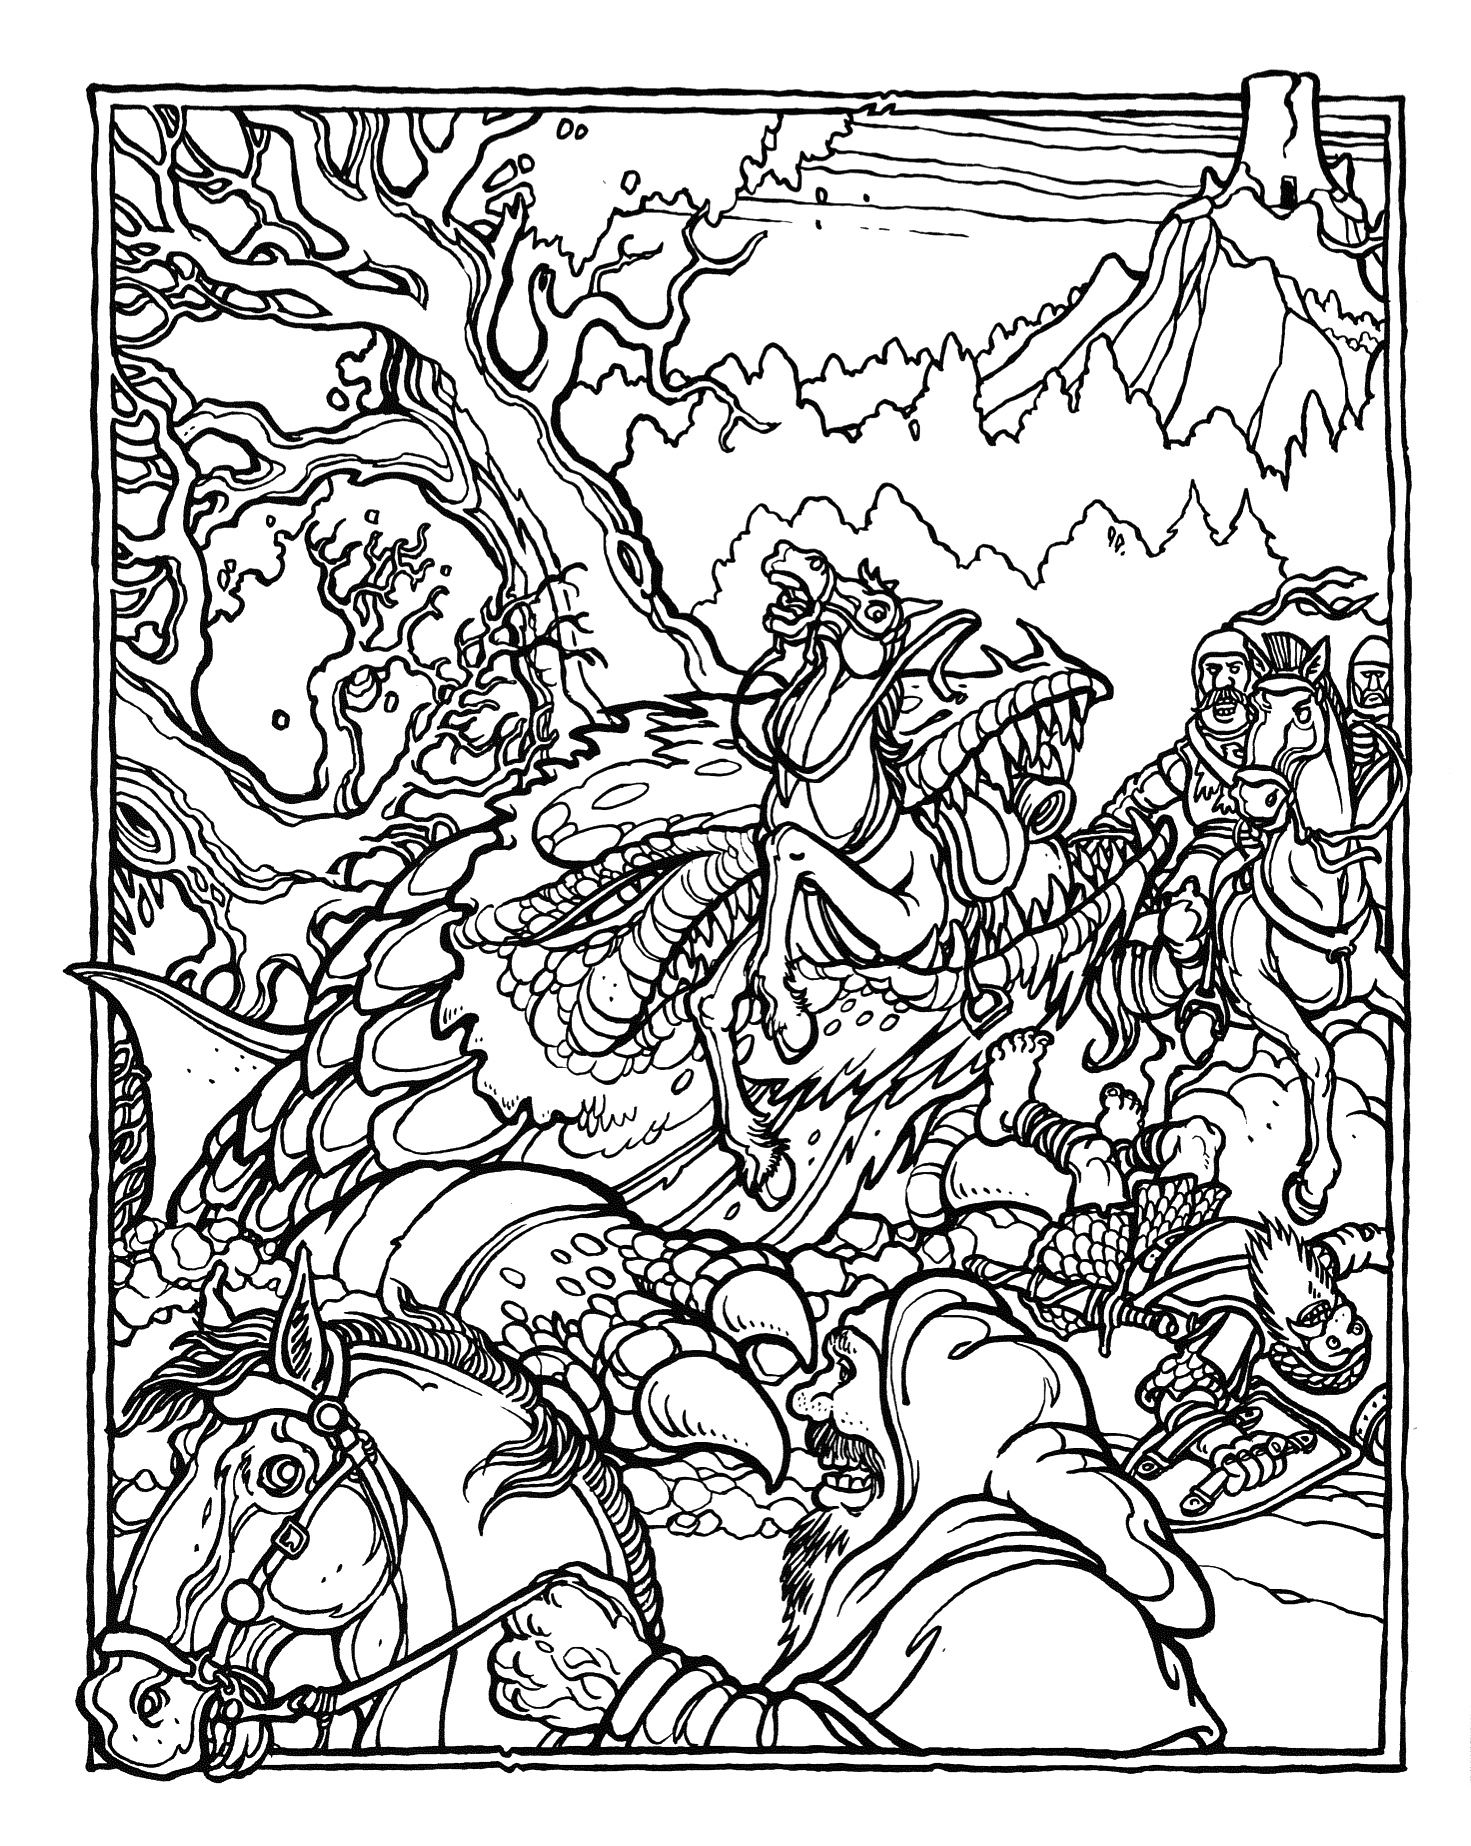 Printable coloring pages dragons - The Official Advanced Dungeons And Dragons Coloring Album 1979